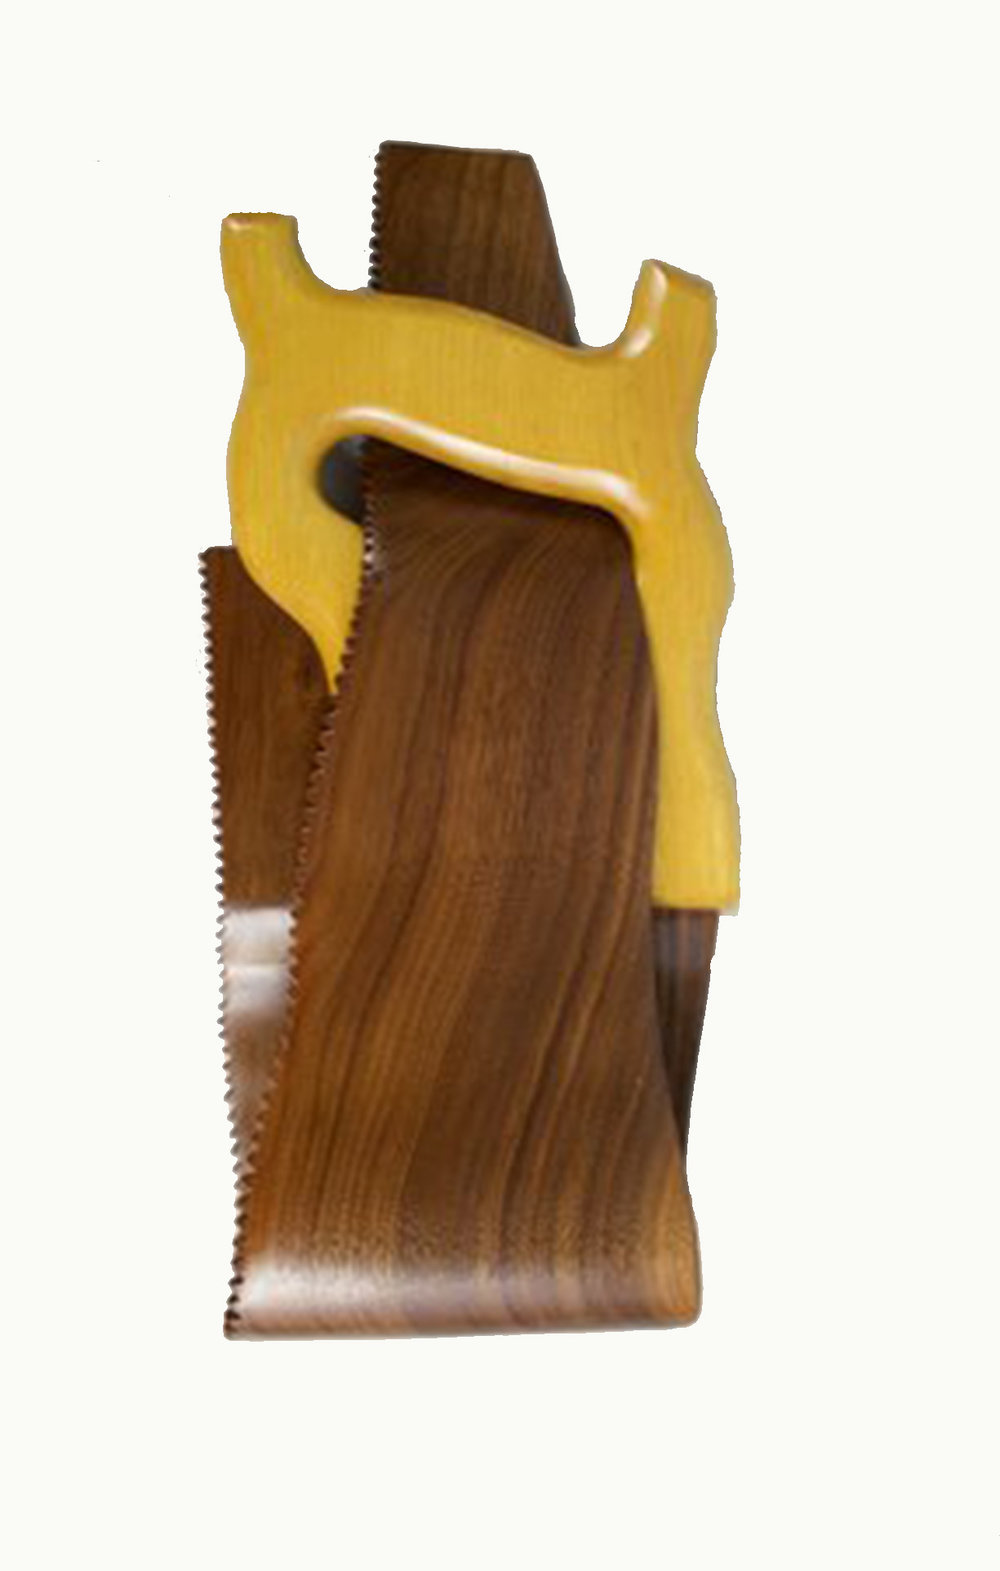 Chris Hedrick    Handsaw,  2016  Walnut & Yellow Heart  CCH0009